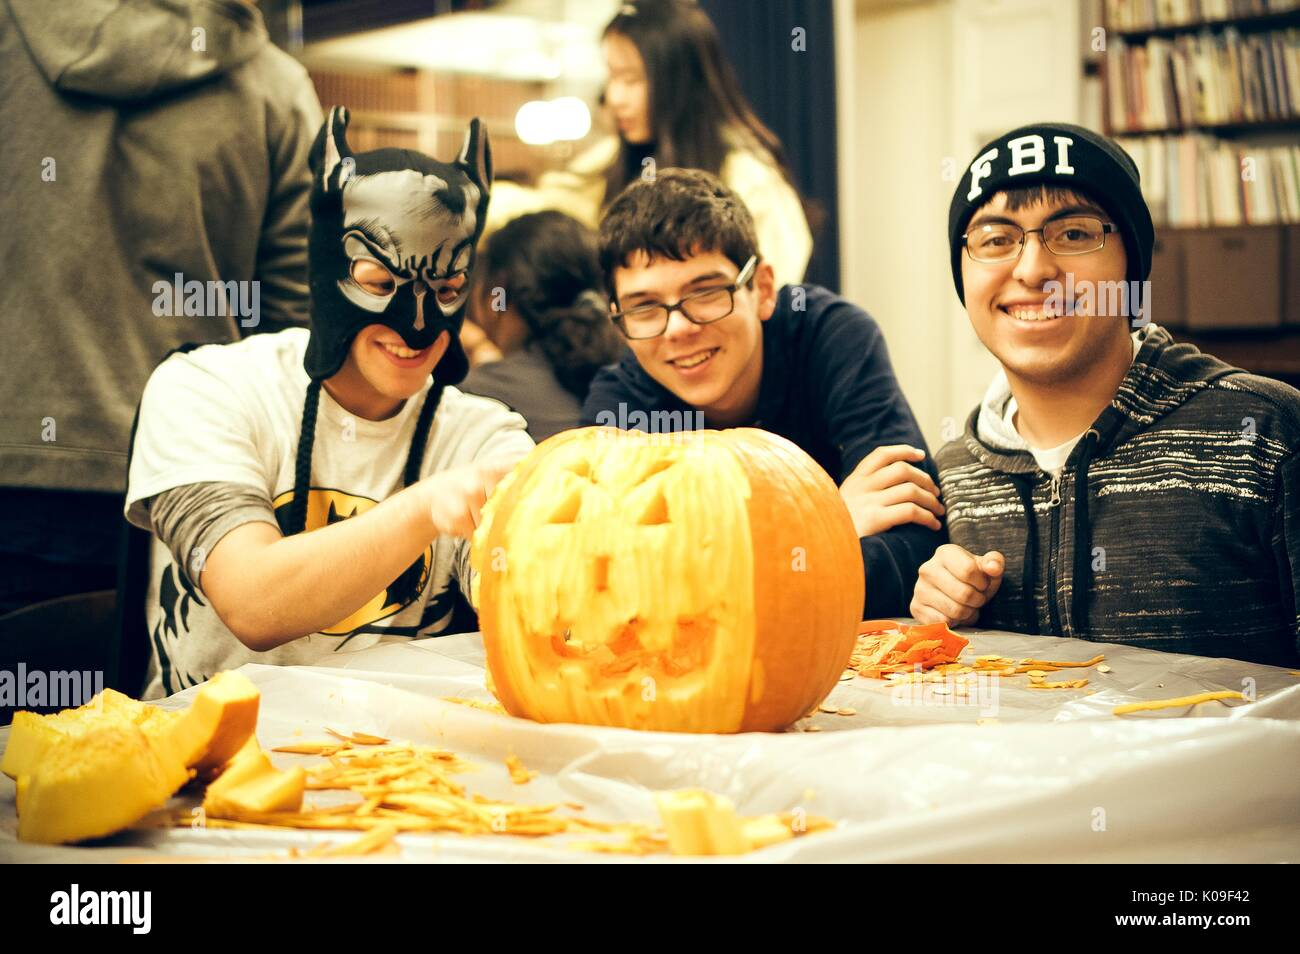 Three male students seated around a table carving a pumpkin, the leftmost student wearing a mask, the middle student without a conspicuous costume, the rightmost student wearing a beanie that reads 'FBI'; all with smiling facial expressions, Halloween at Peabody, October 31, 2015. Courtesy Eric Chen. - Stock Image